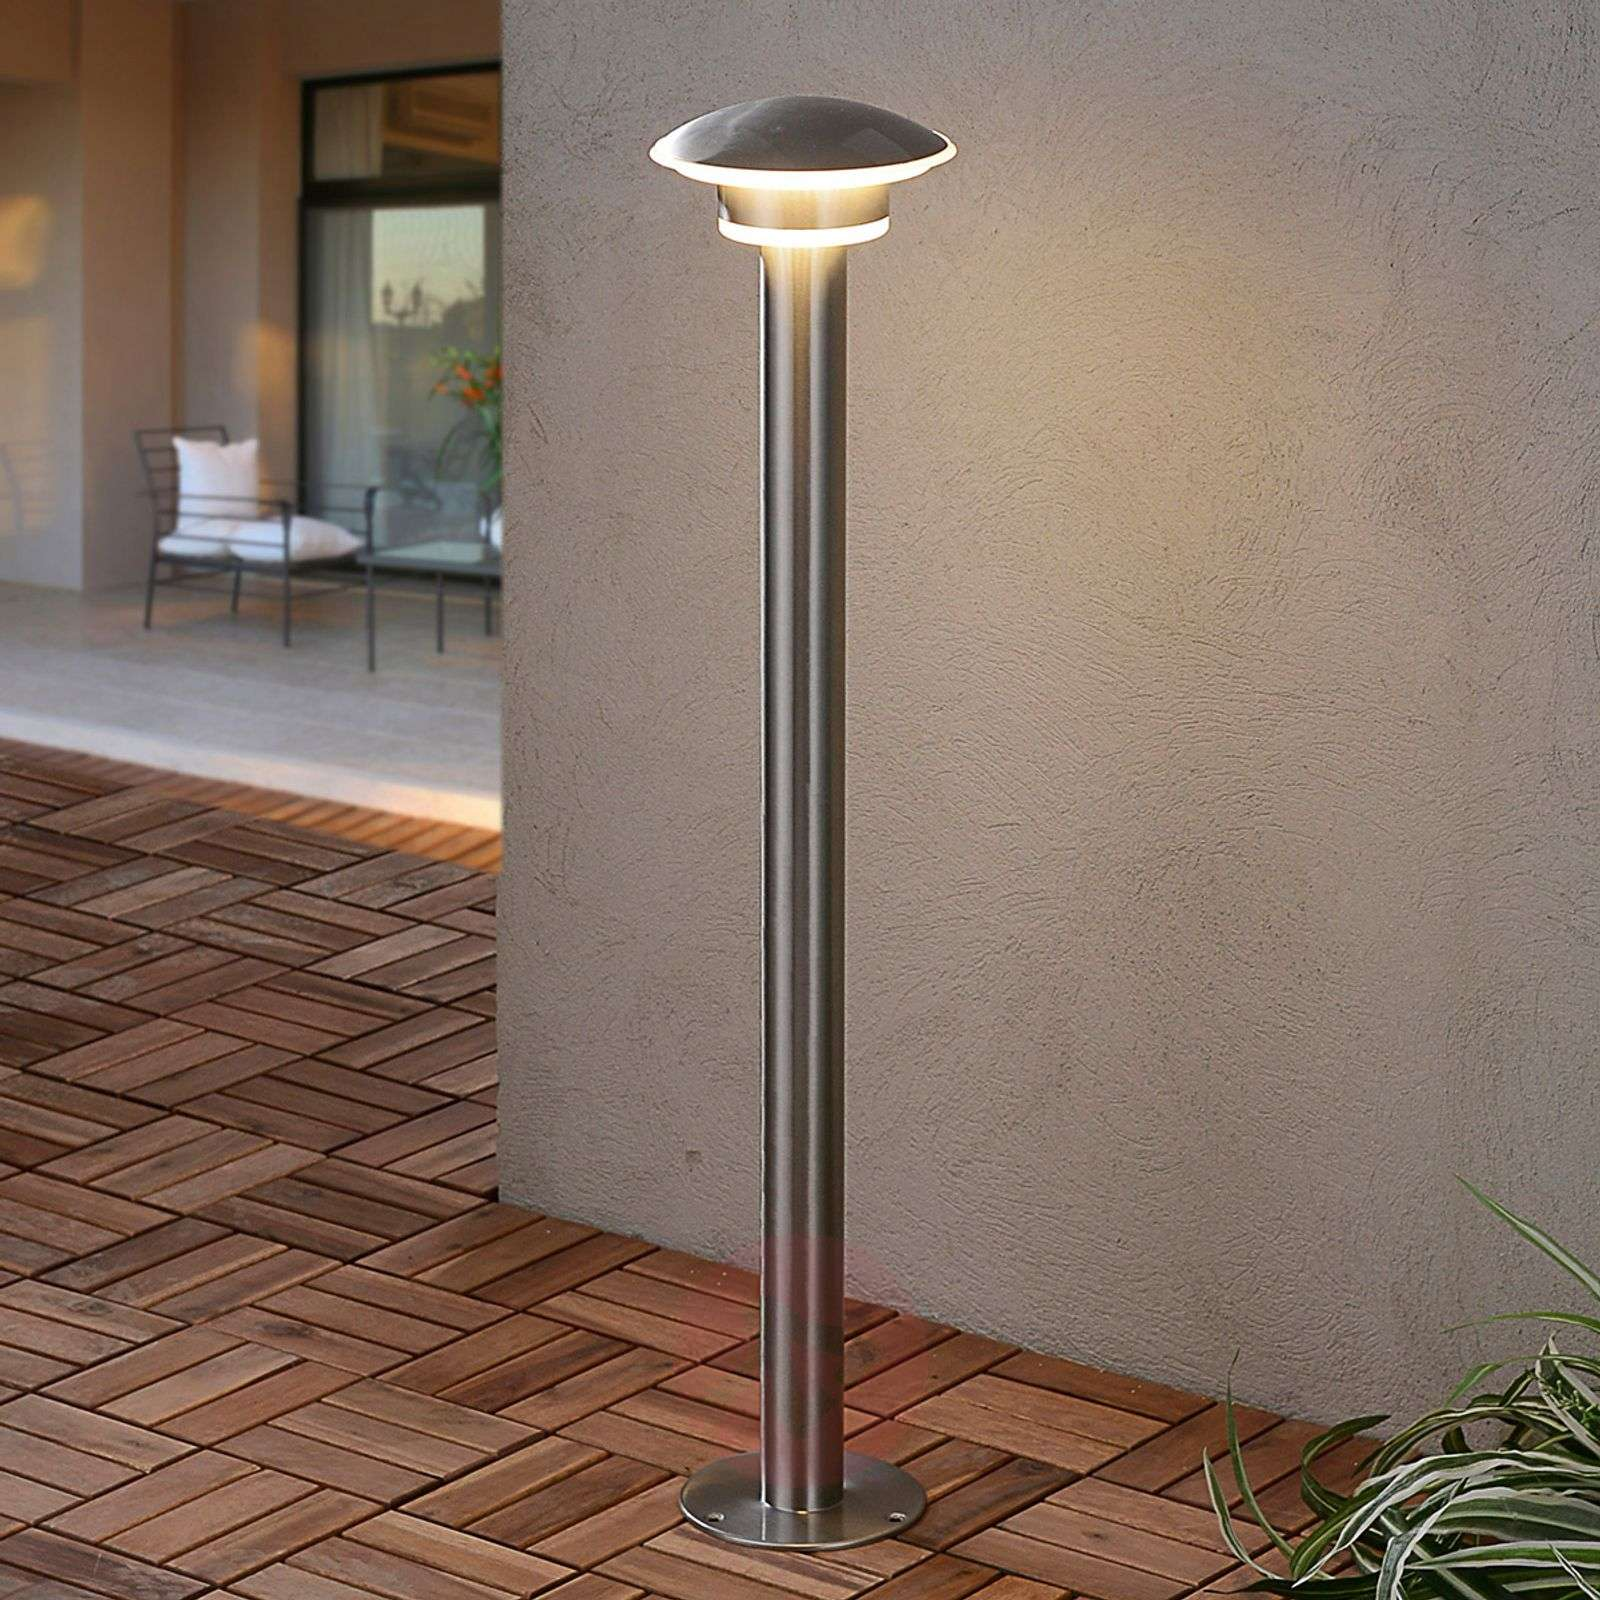 Lillie stainless steel bollard light with LEDs-9988021-01